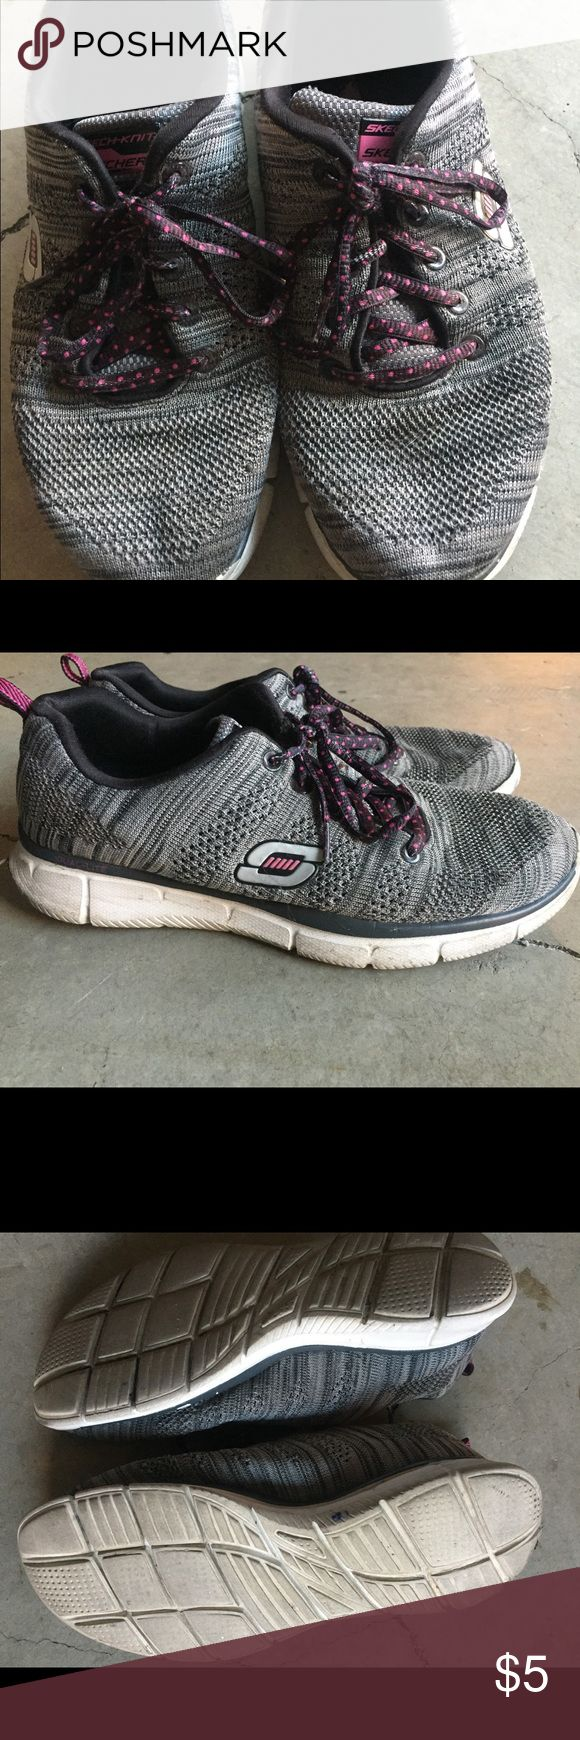 Women's Skechers Tennis Shoes Women's size 9. Memory foam insoles. Used but still wearable. Skechers Shoes Sneakers